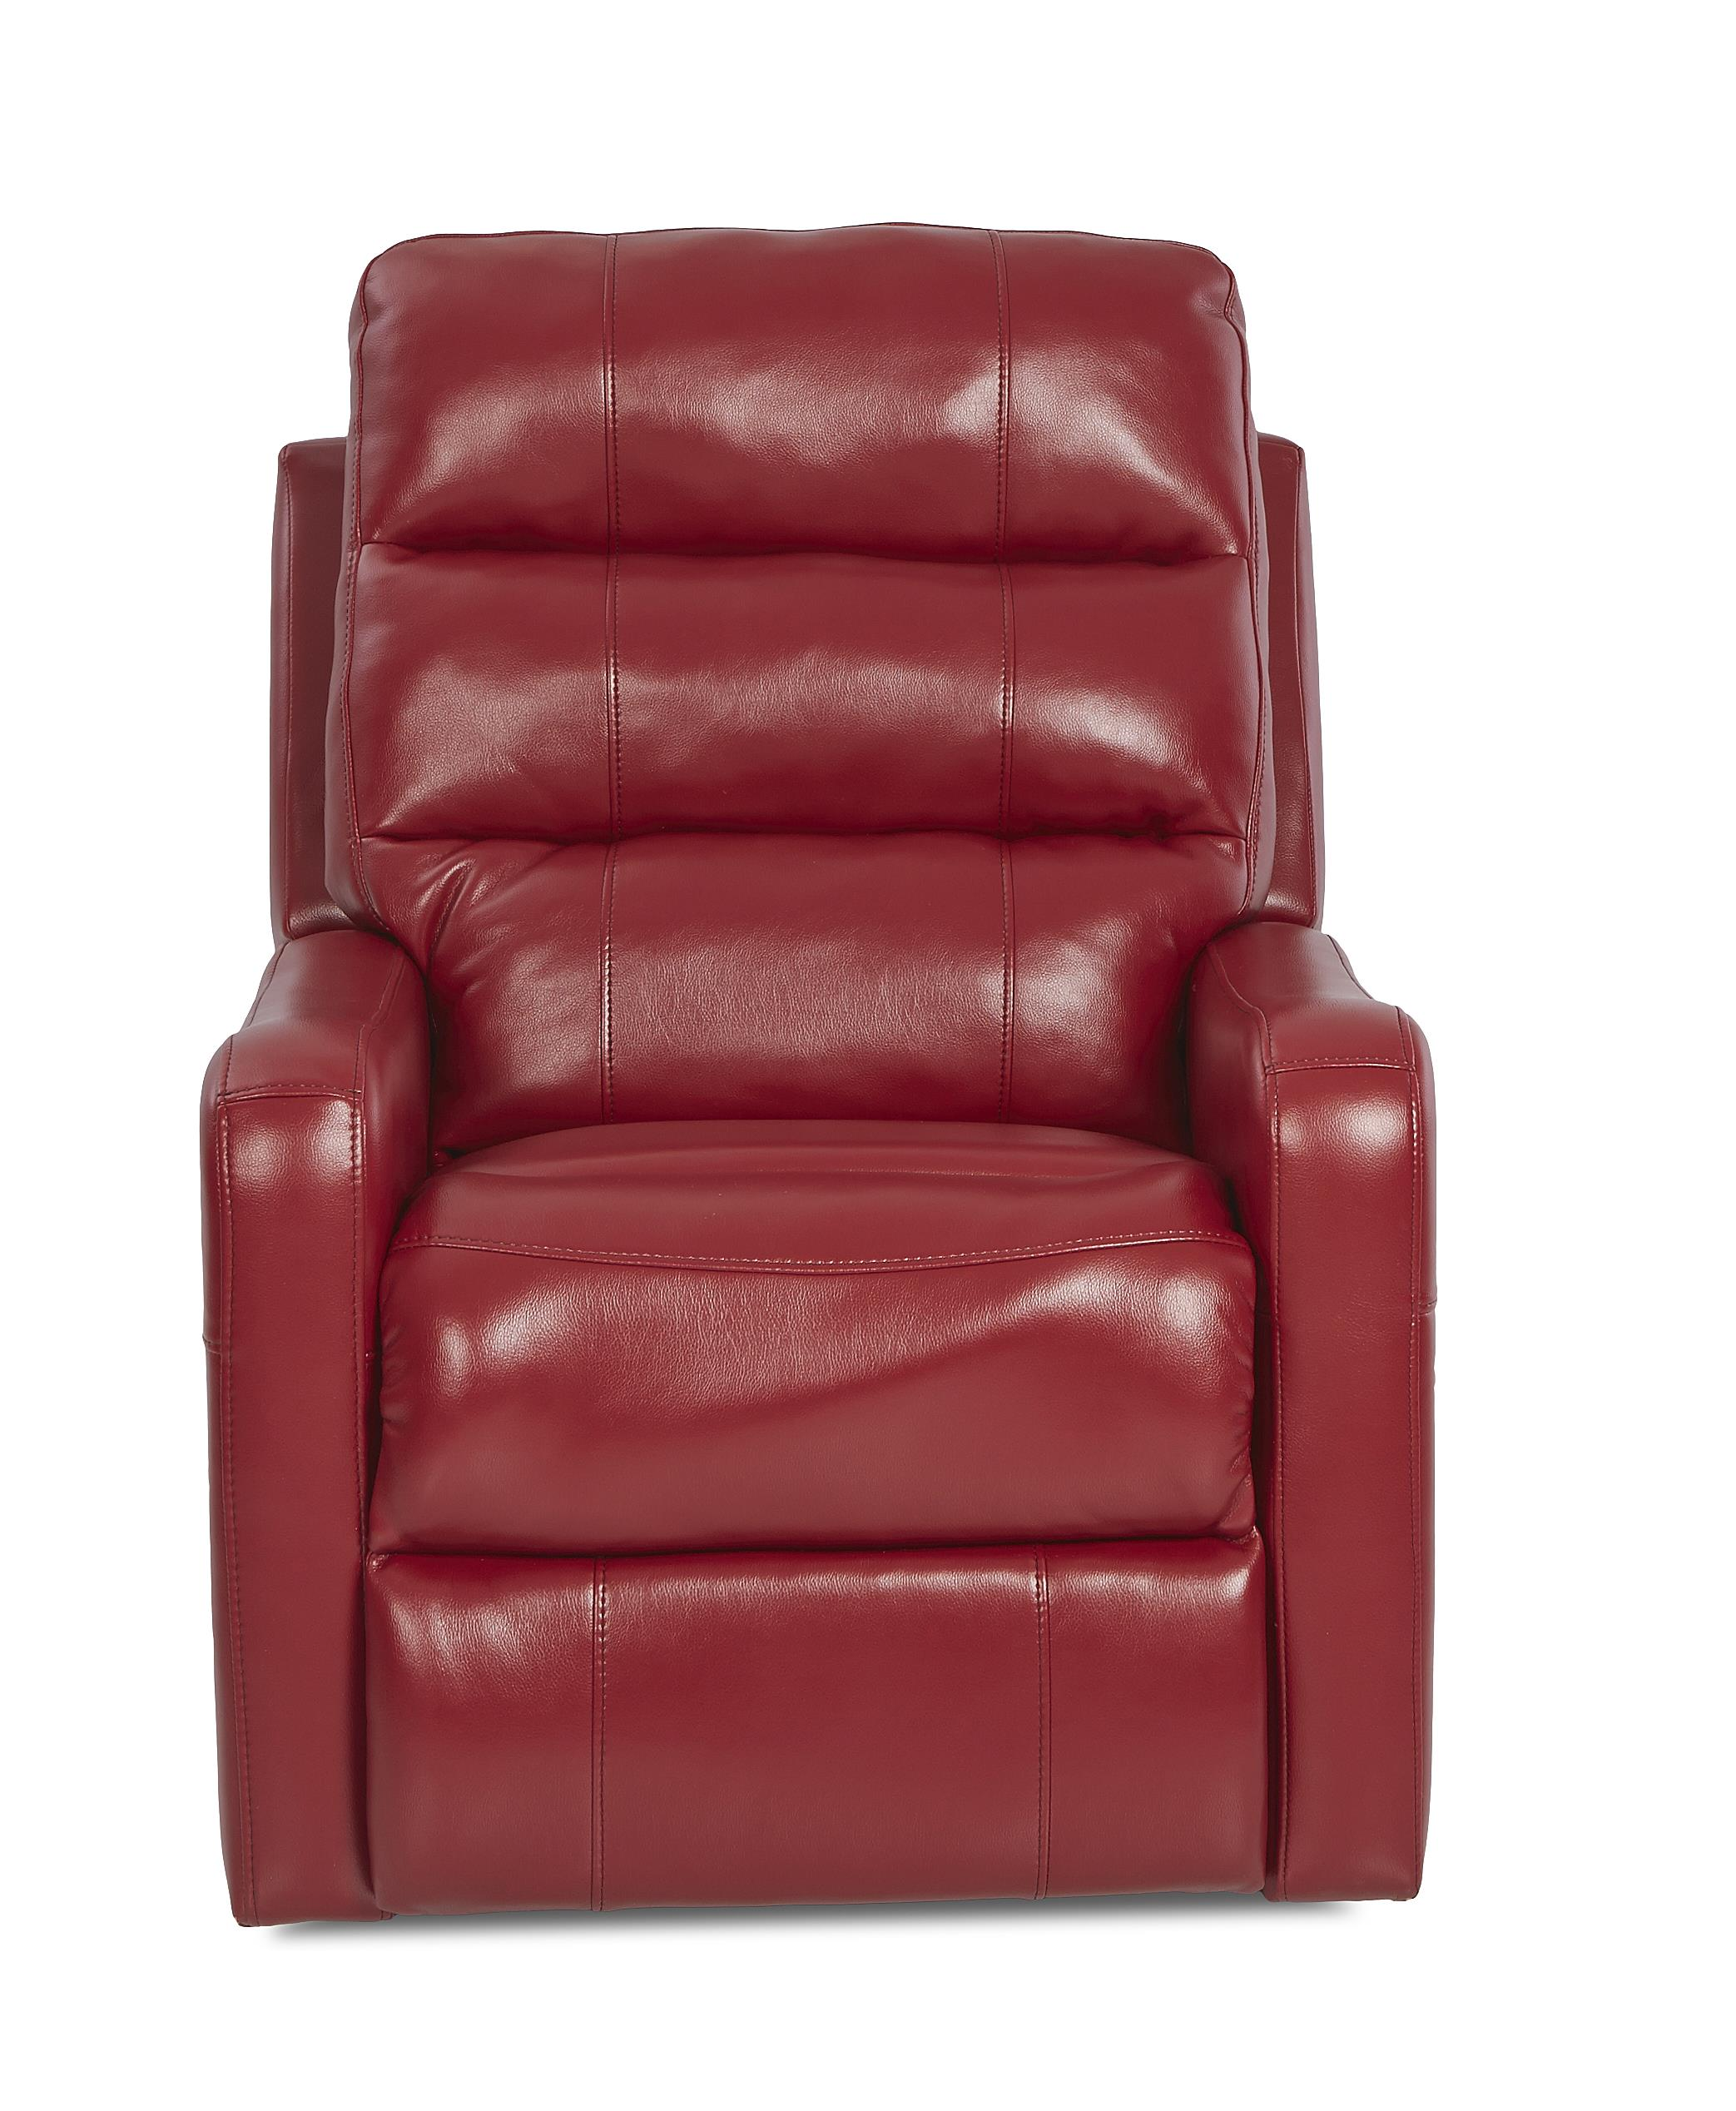 Contemporary Reclining Rocking Chair